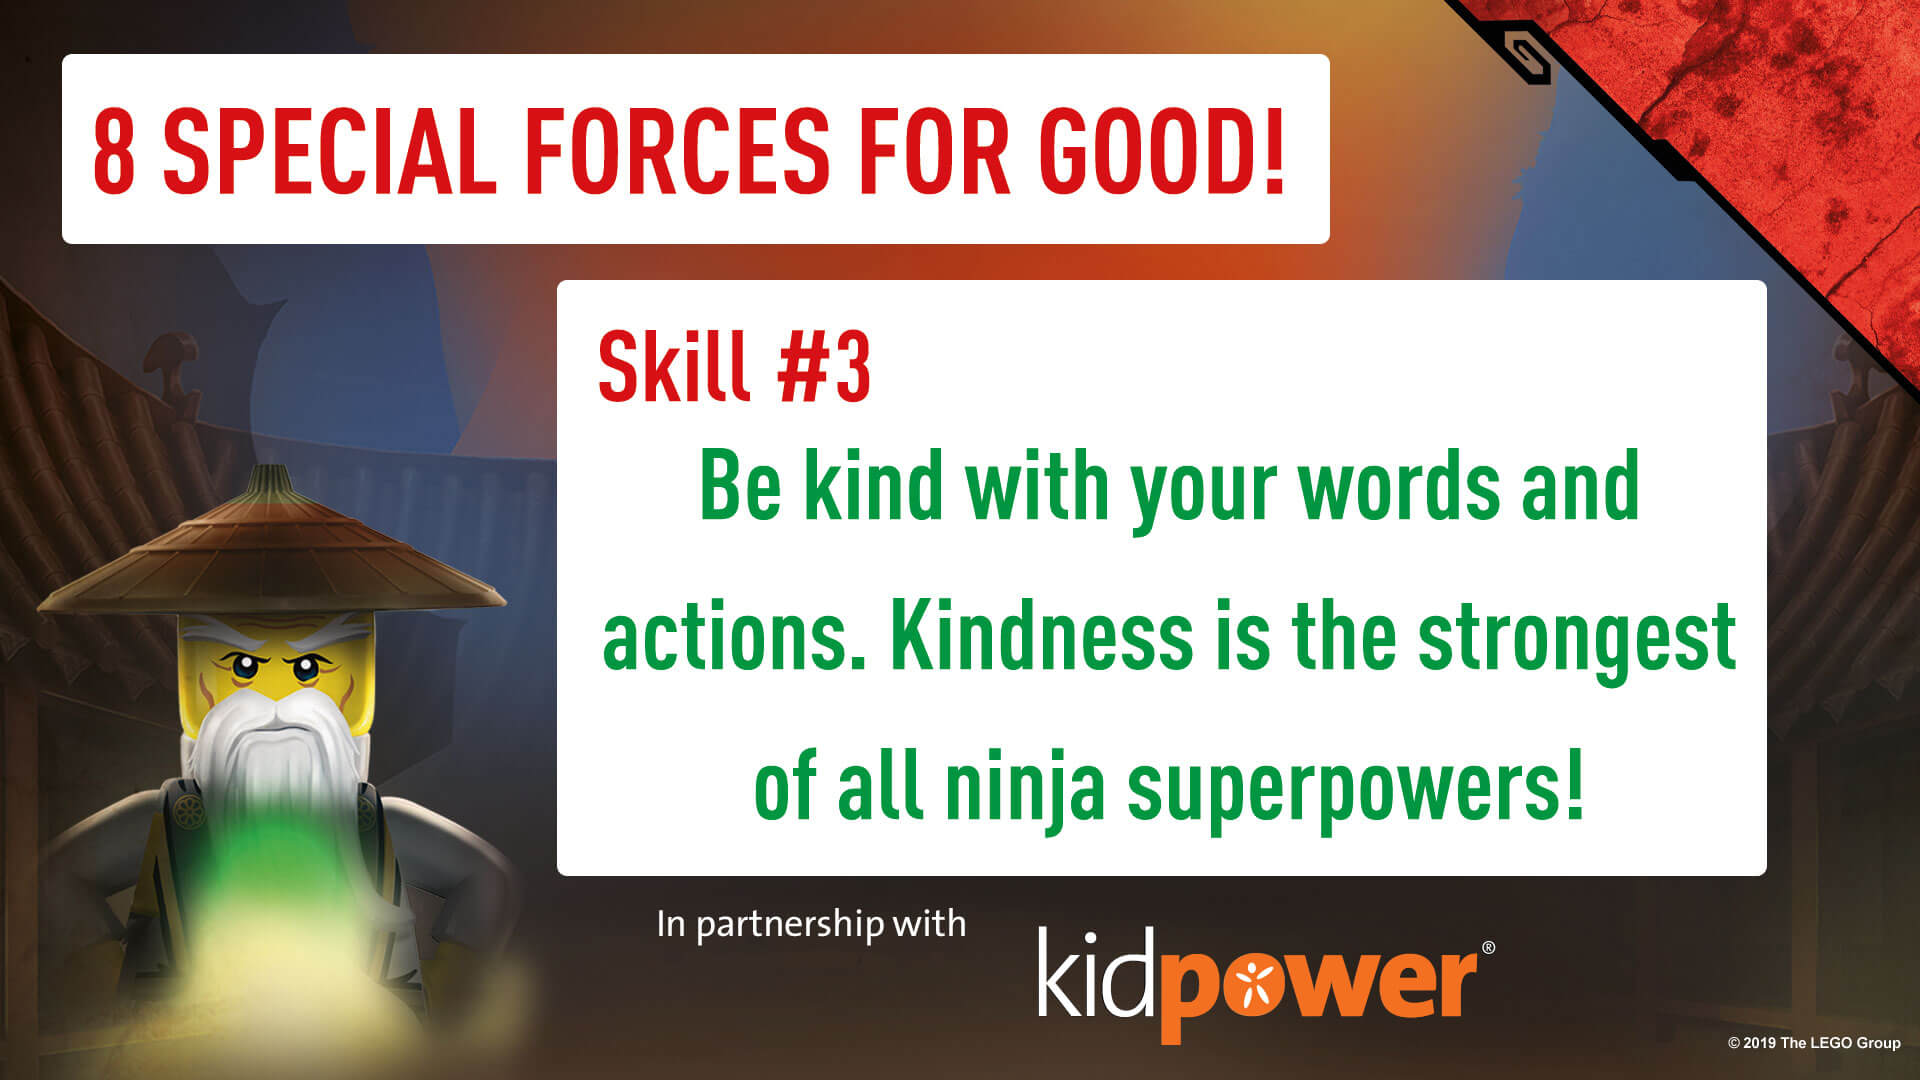 Special Forces For Good - Skill #3 - NINJAGO & KIDPOWER